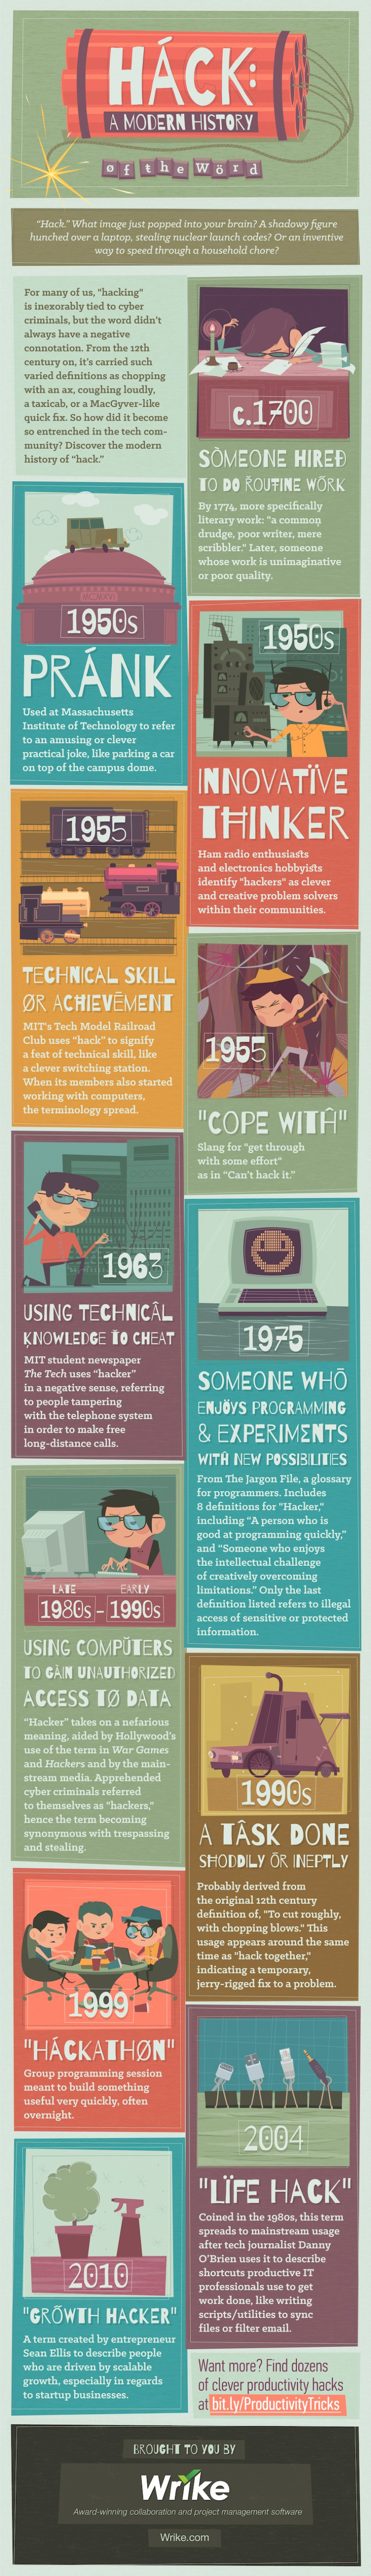 The History of the Word 'Hack' - by Wrike project management software